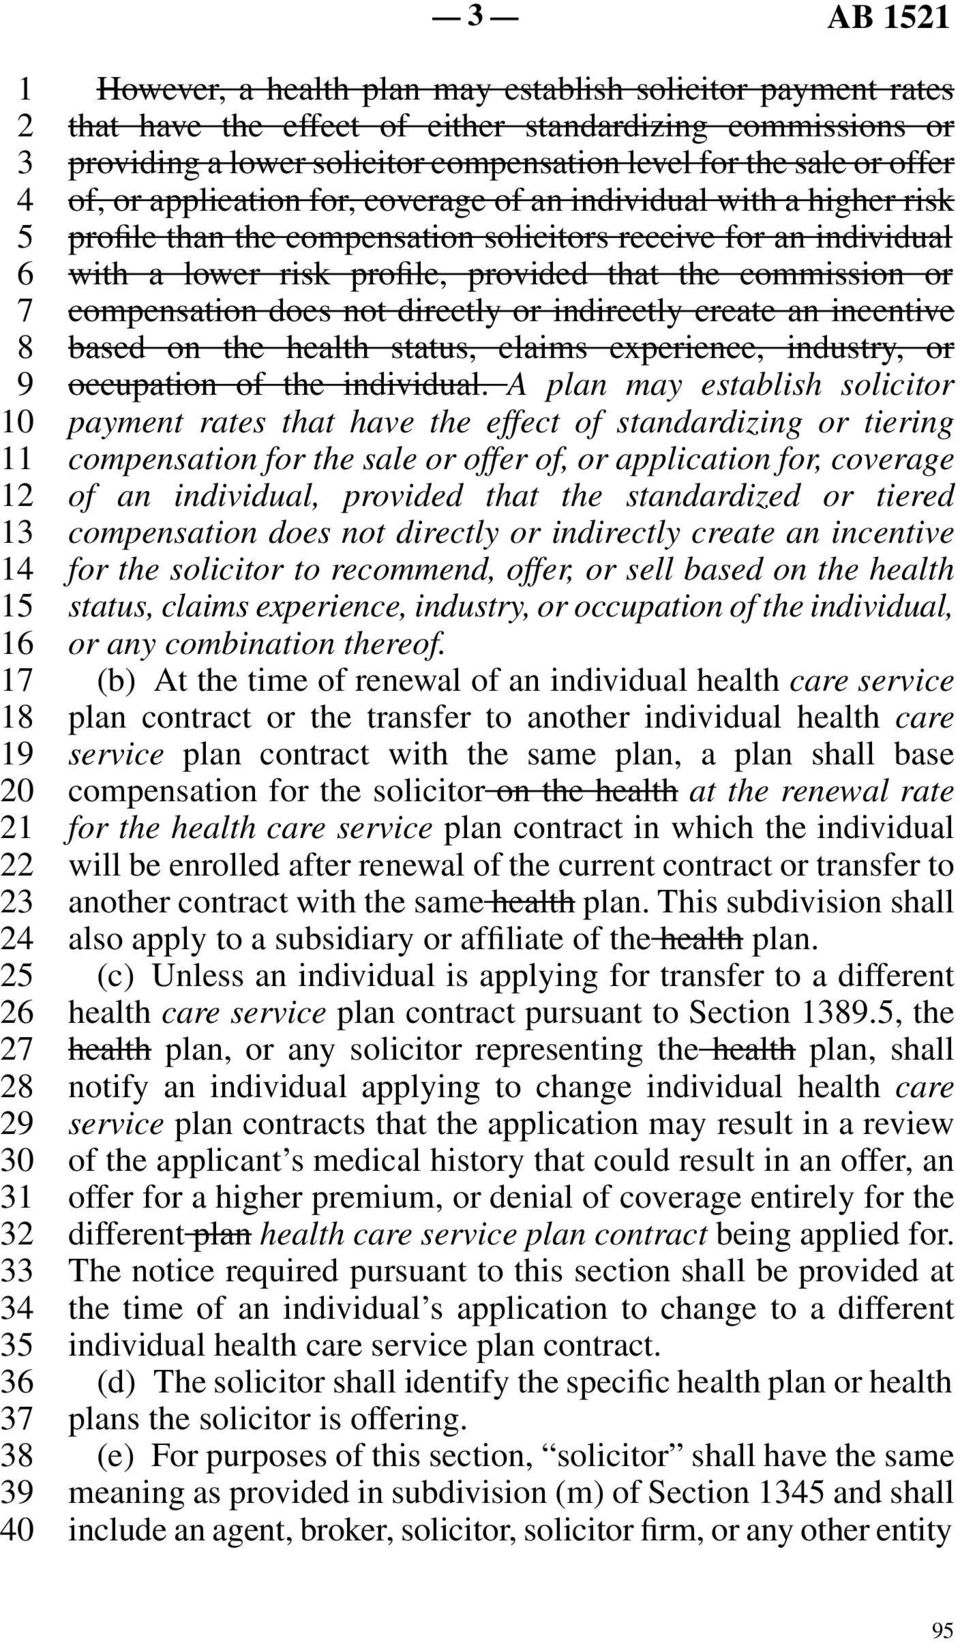 or based on the health status, claims experience, industry, or occupation of the individual.